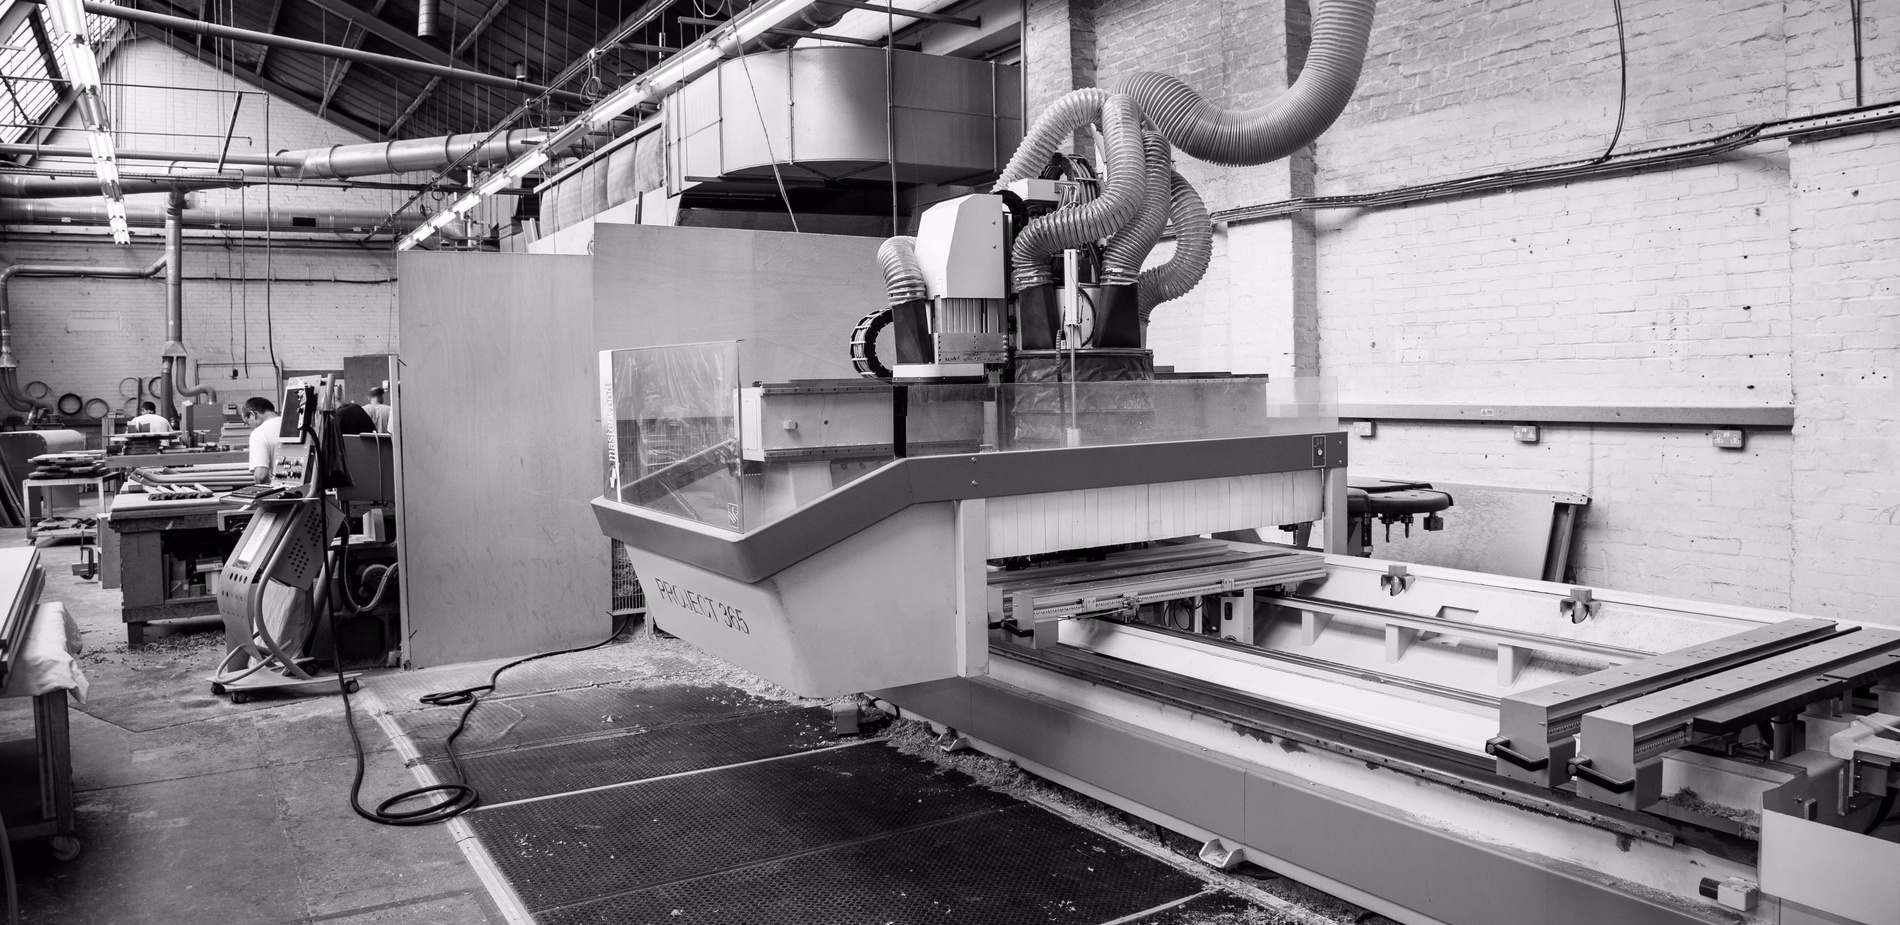 CNC milling machines at K&D Joinery factory in Dagenham